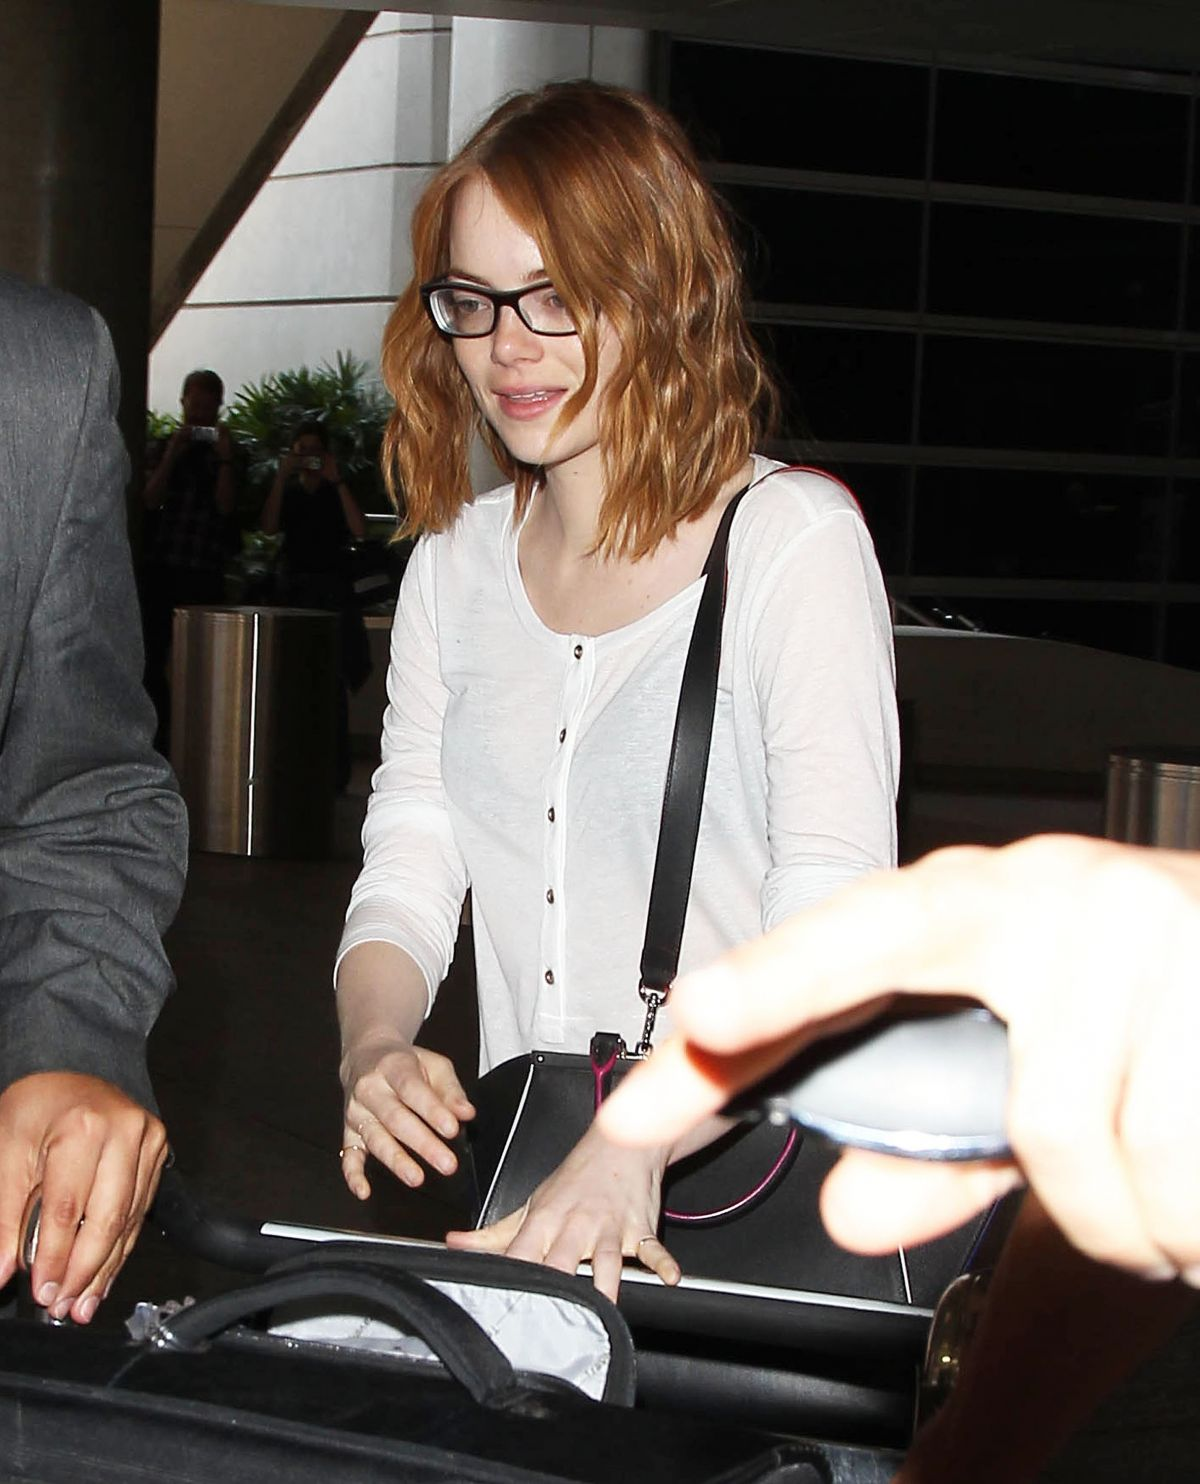 EMMA STONE Arrives at Los Angeles International Airport 05/18/2015